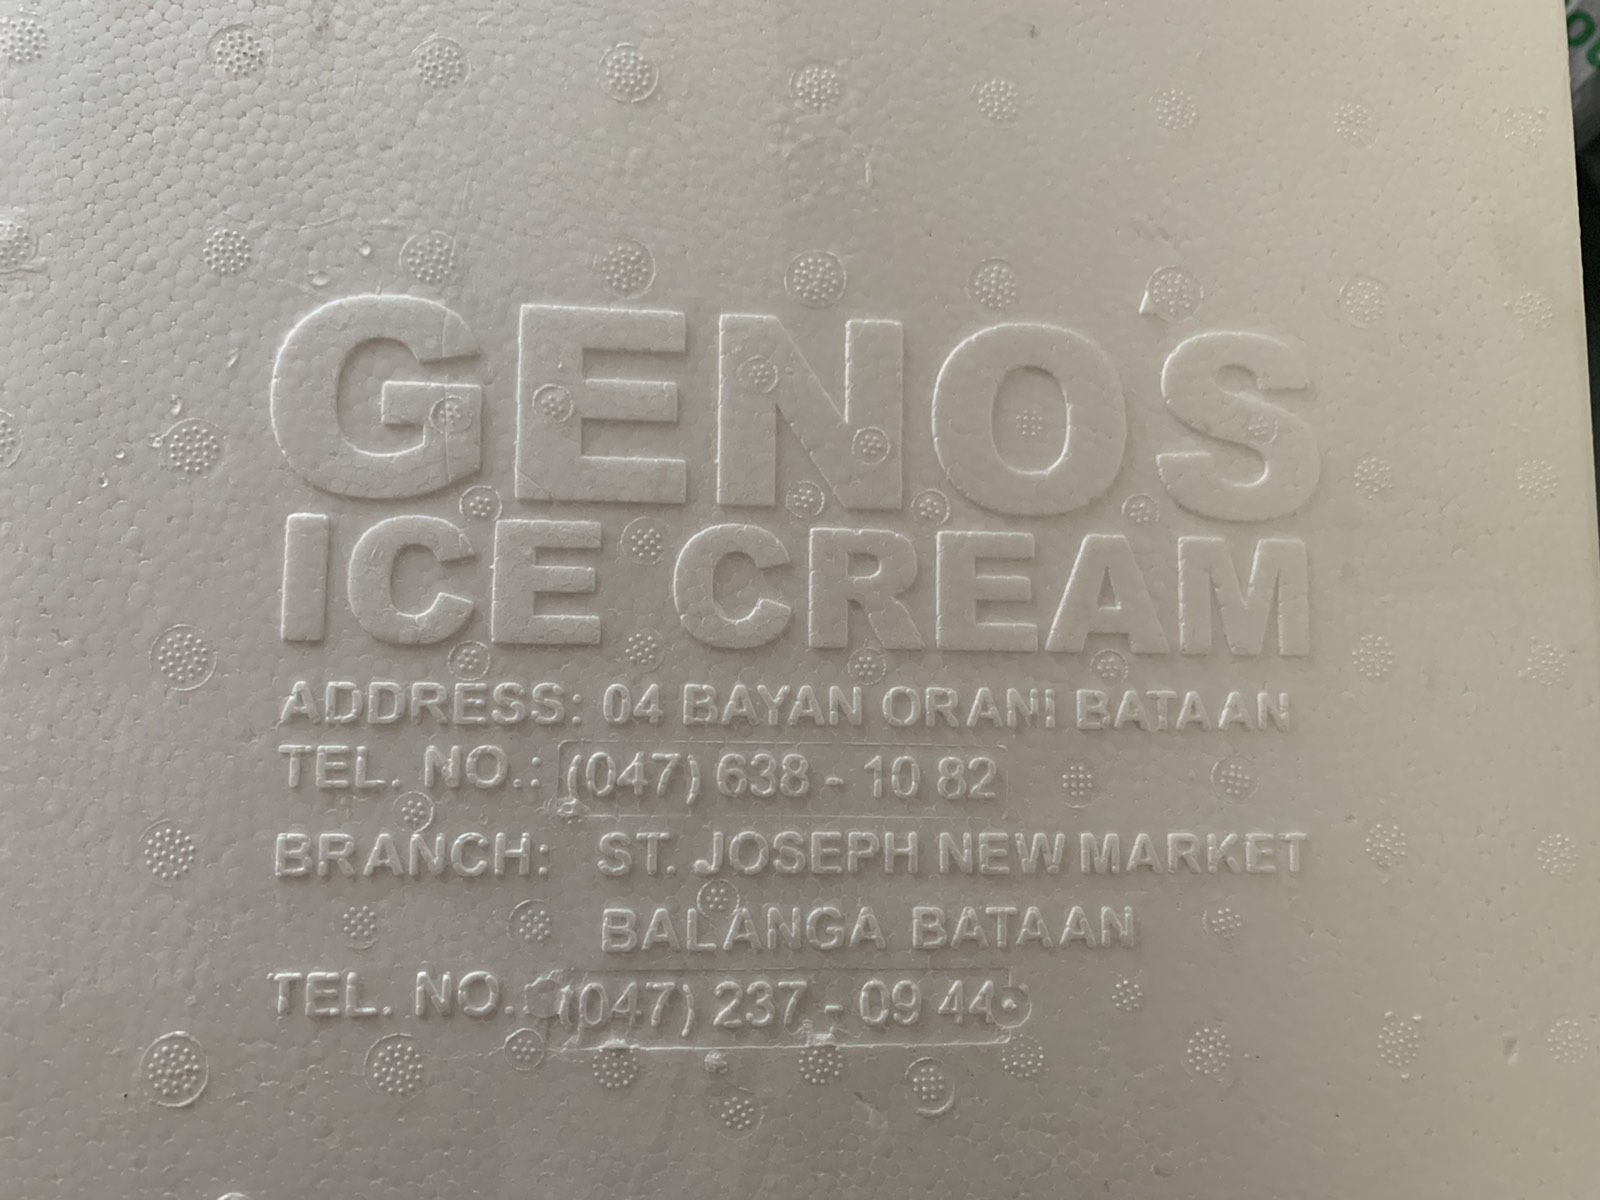 Geno's Ice Cream logo with address and telephone number.